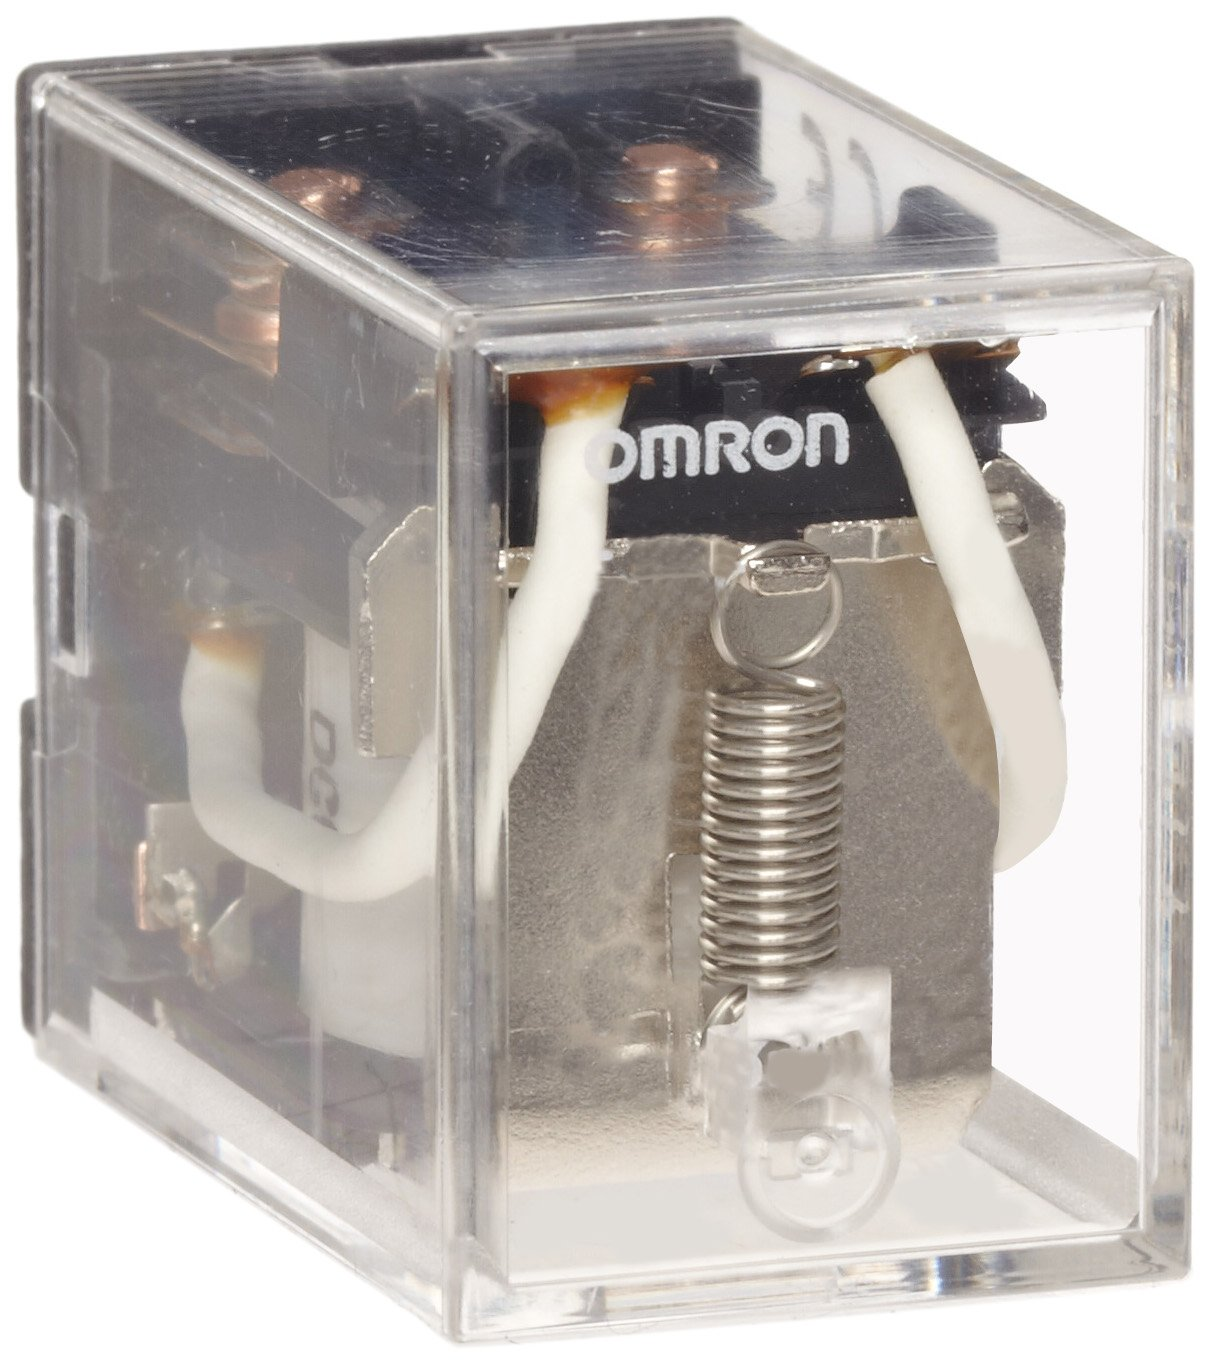 Omron LY2-AC110/120 General Purpose Relay, Standard Type, Plug-In/Solder Terminal, Standard Bracket Mounting, Single Contact, Double Pole Double Throw Contacts, 9.9 to 10.8 mA at 50 Hz and 8.4 to 9.2 mA at 60 Hz Rated Load Current, 110 to 120 VAC Rated Lo